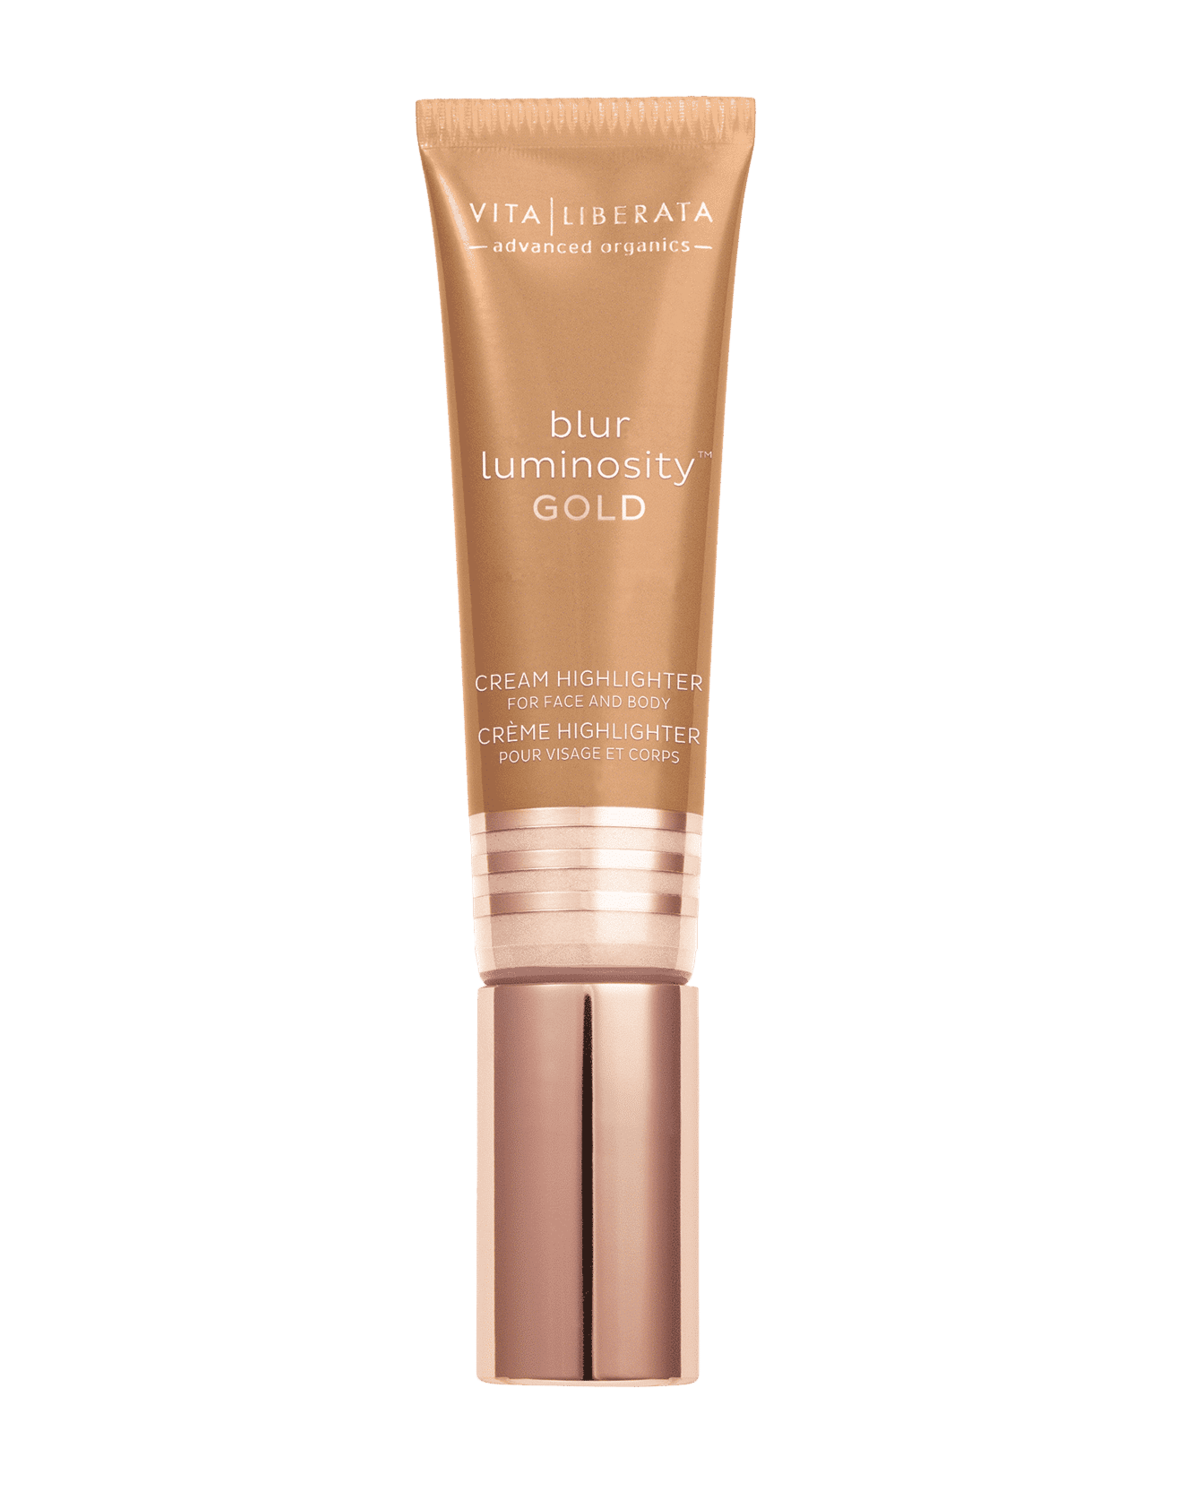 Vita Liberata Blur Luminosity Gold, 30ml.